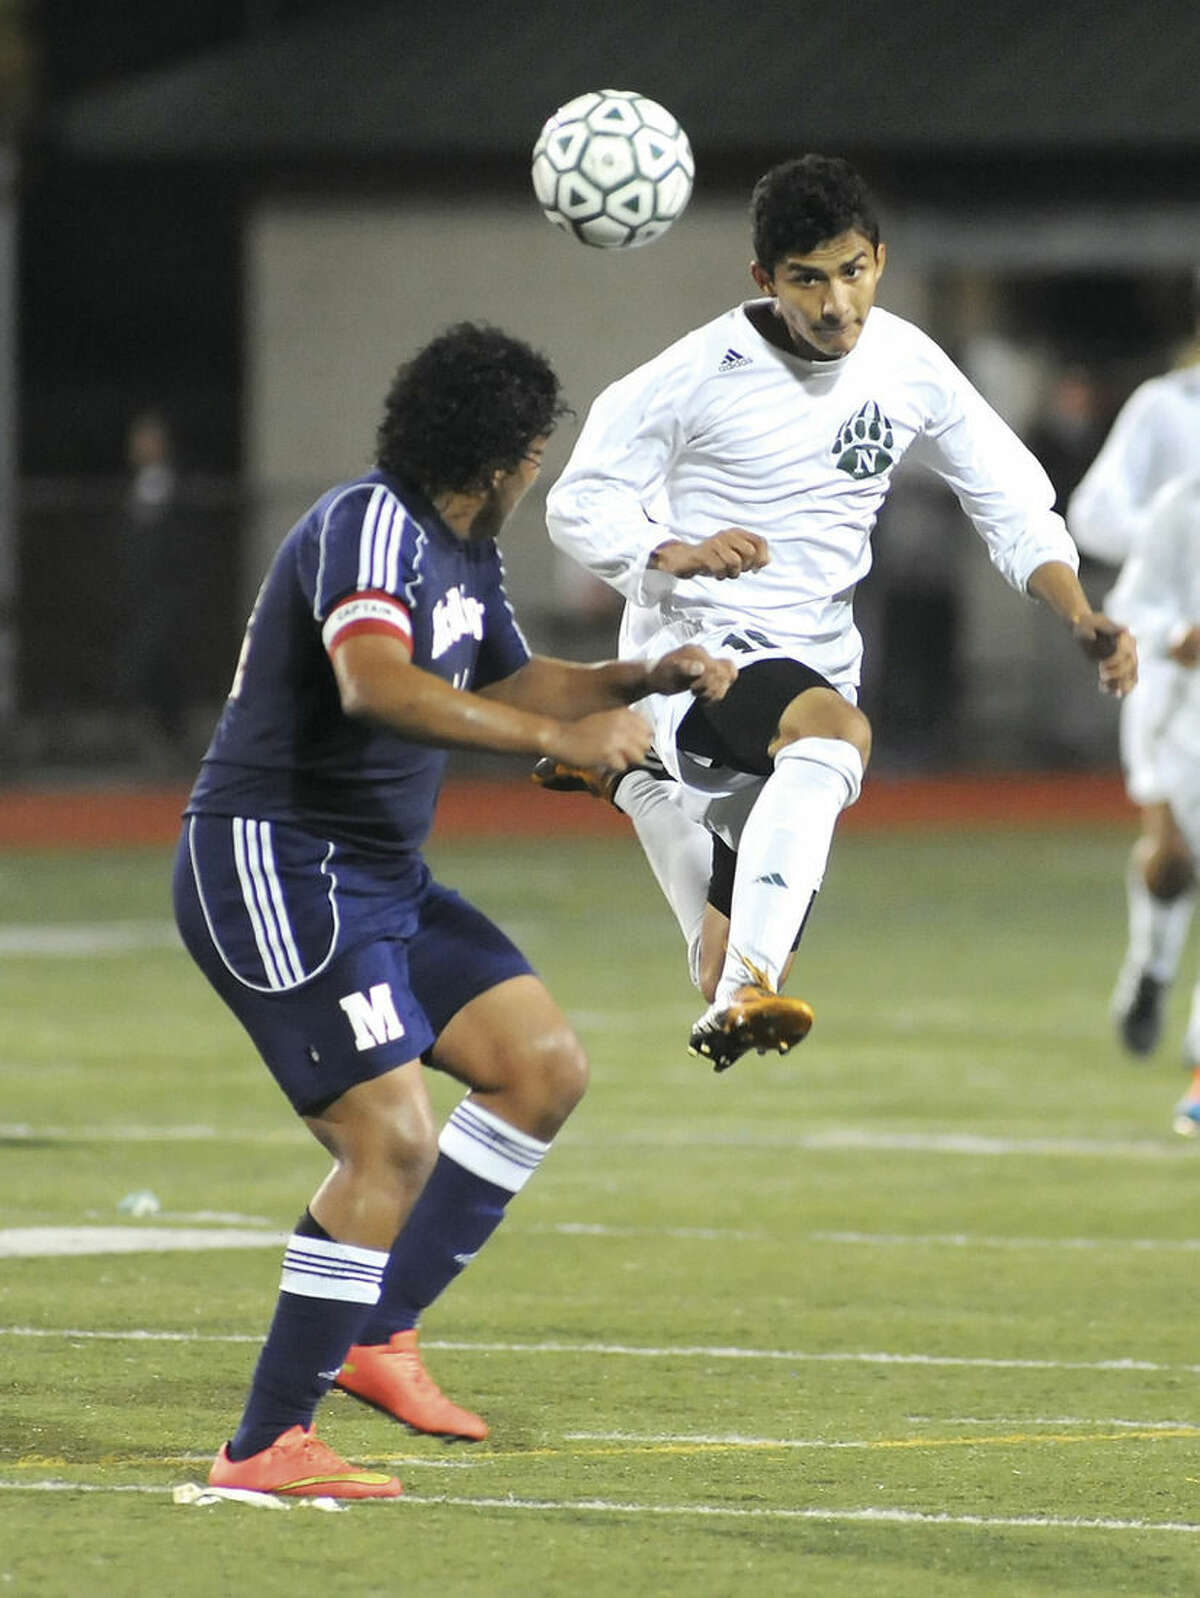 Hour photo/John Nash Norwalk's Patrick Barrantes, right, heads the ball past Brien McMahon's Sergio Ceja during Tuesday's game at Testa Field in Norwalk.